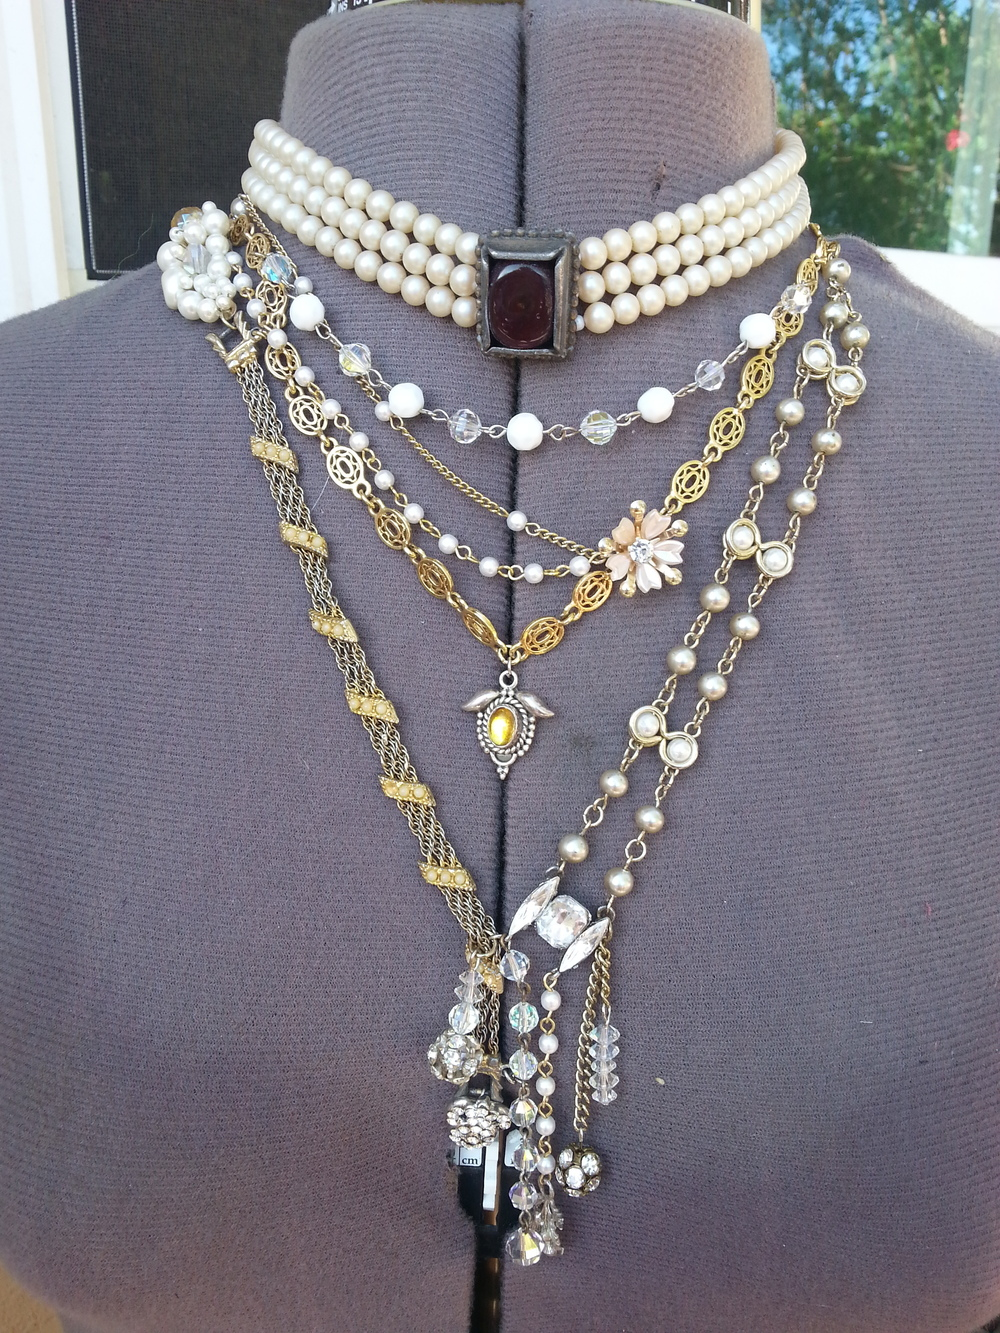 The LEO DUO Heritage Wedding Necklace: something old becomes something new!